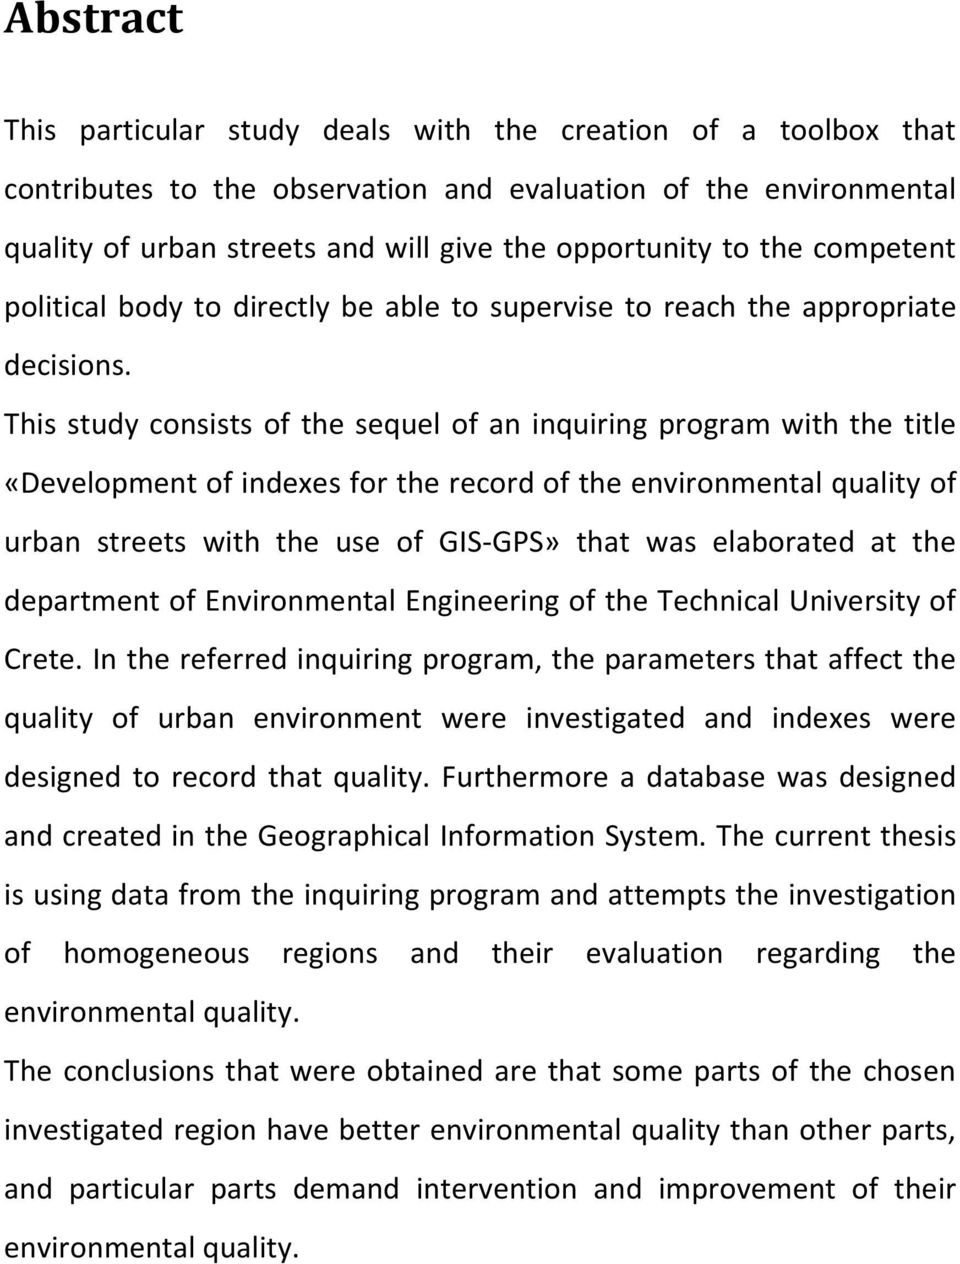 This study consists of the sequel of an inquiring program with the title «Development of indexes for the record of the environmental quality of urban streets with the use of GIS-GPS» that was